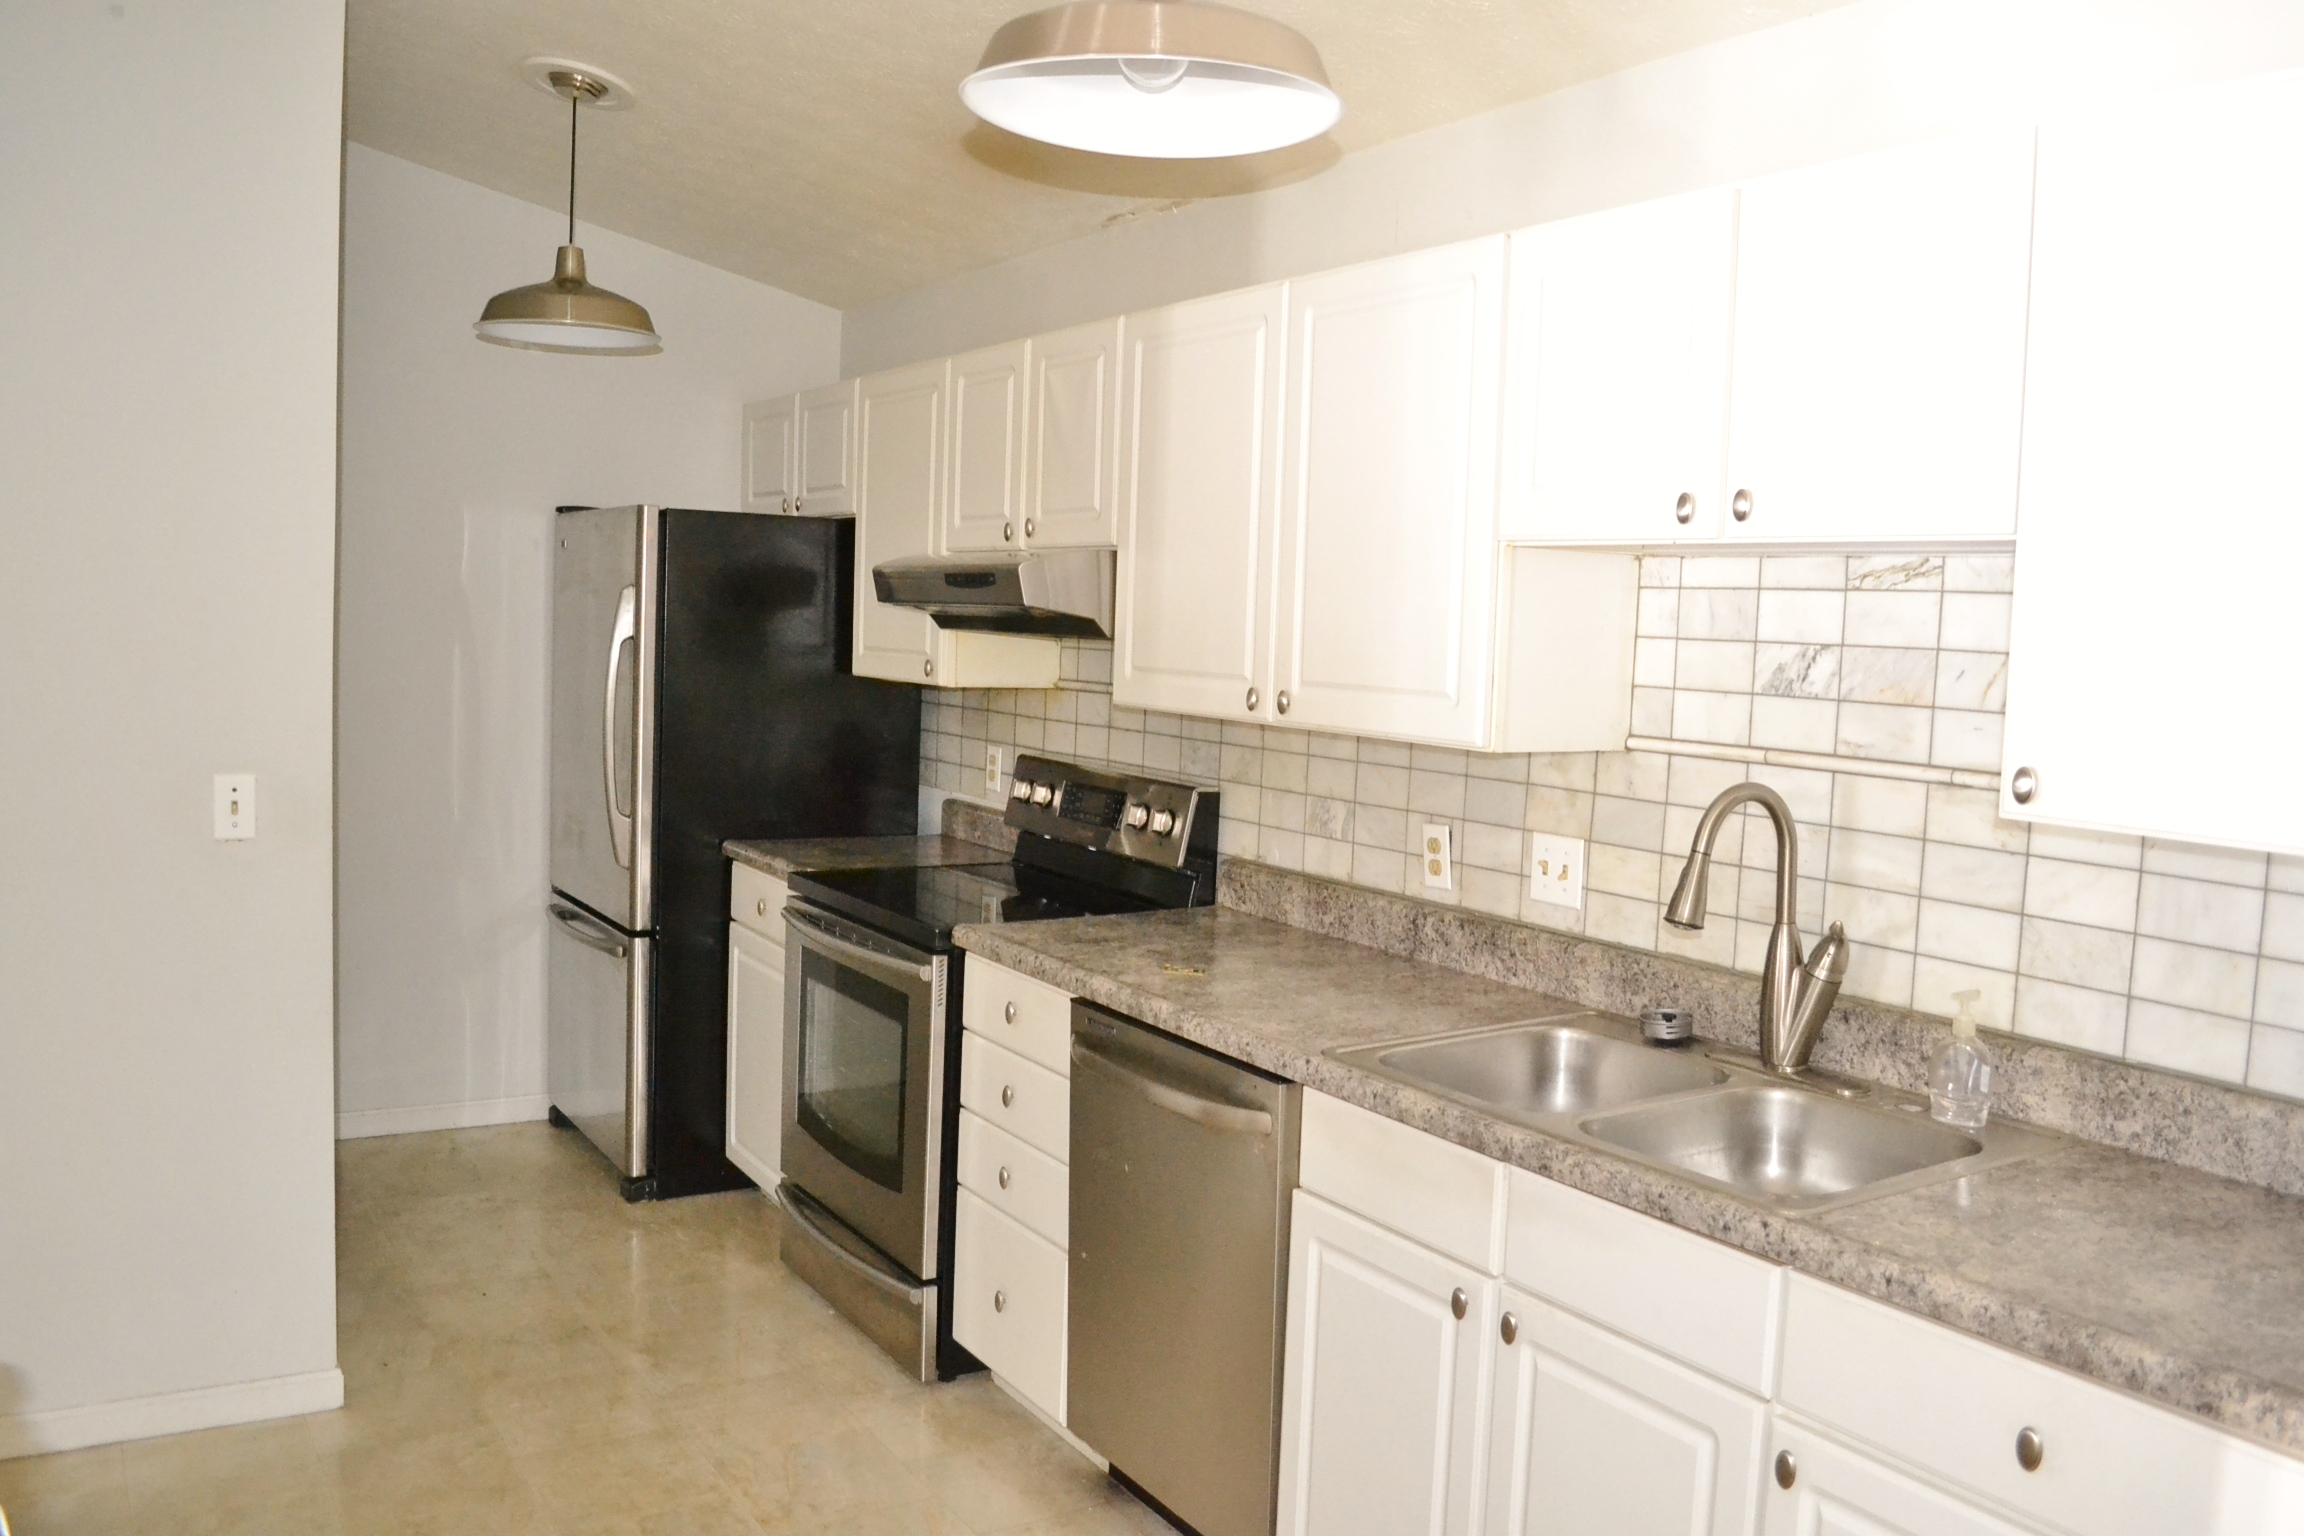 Condos For sale in west chester ohio -